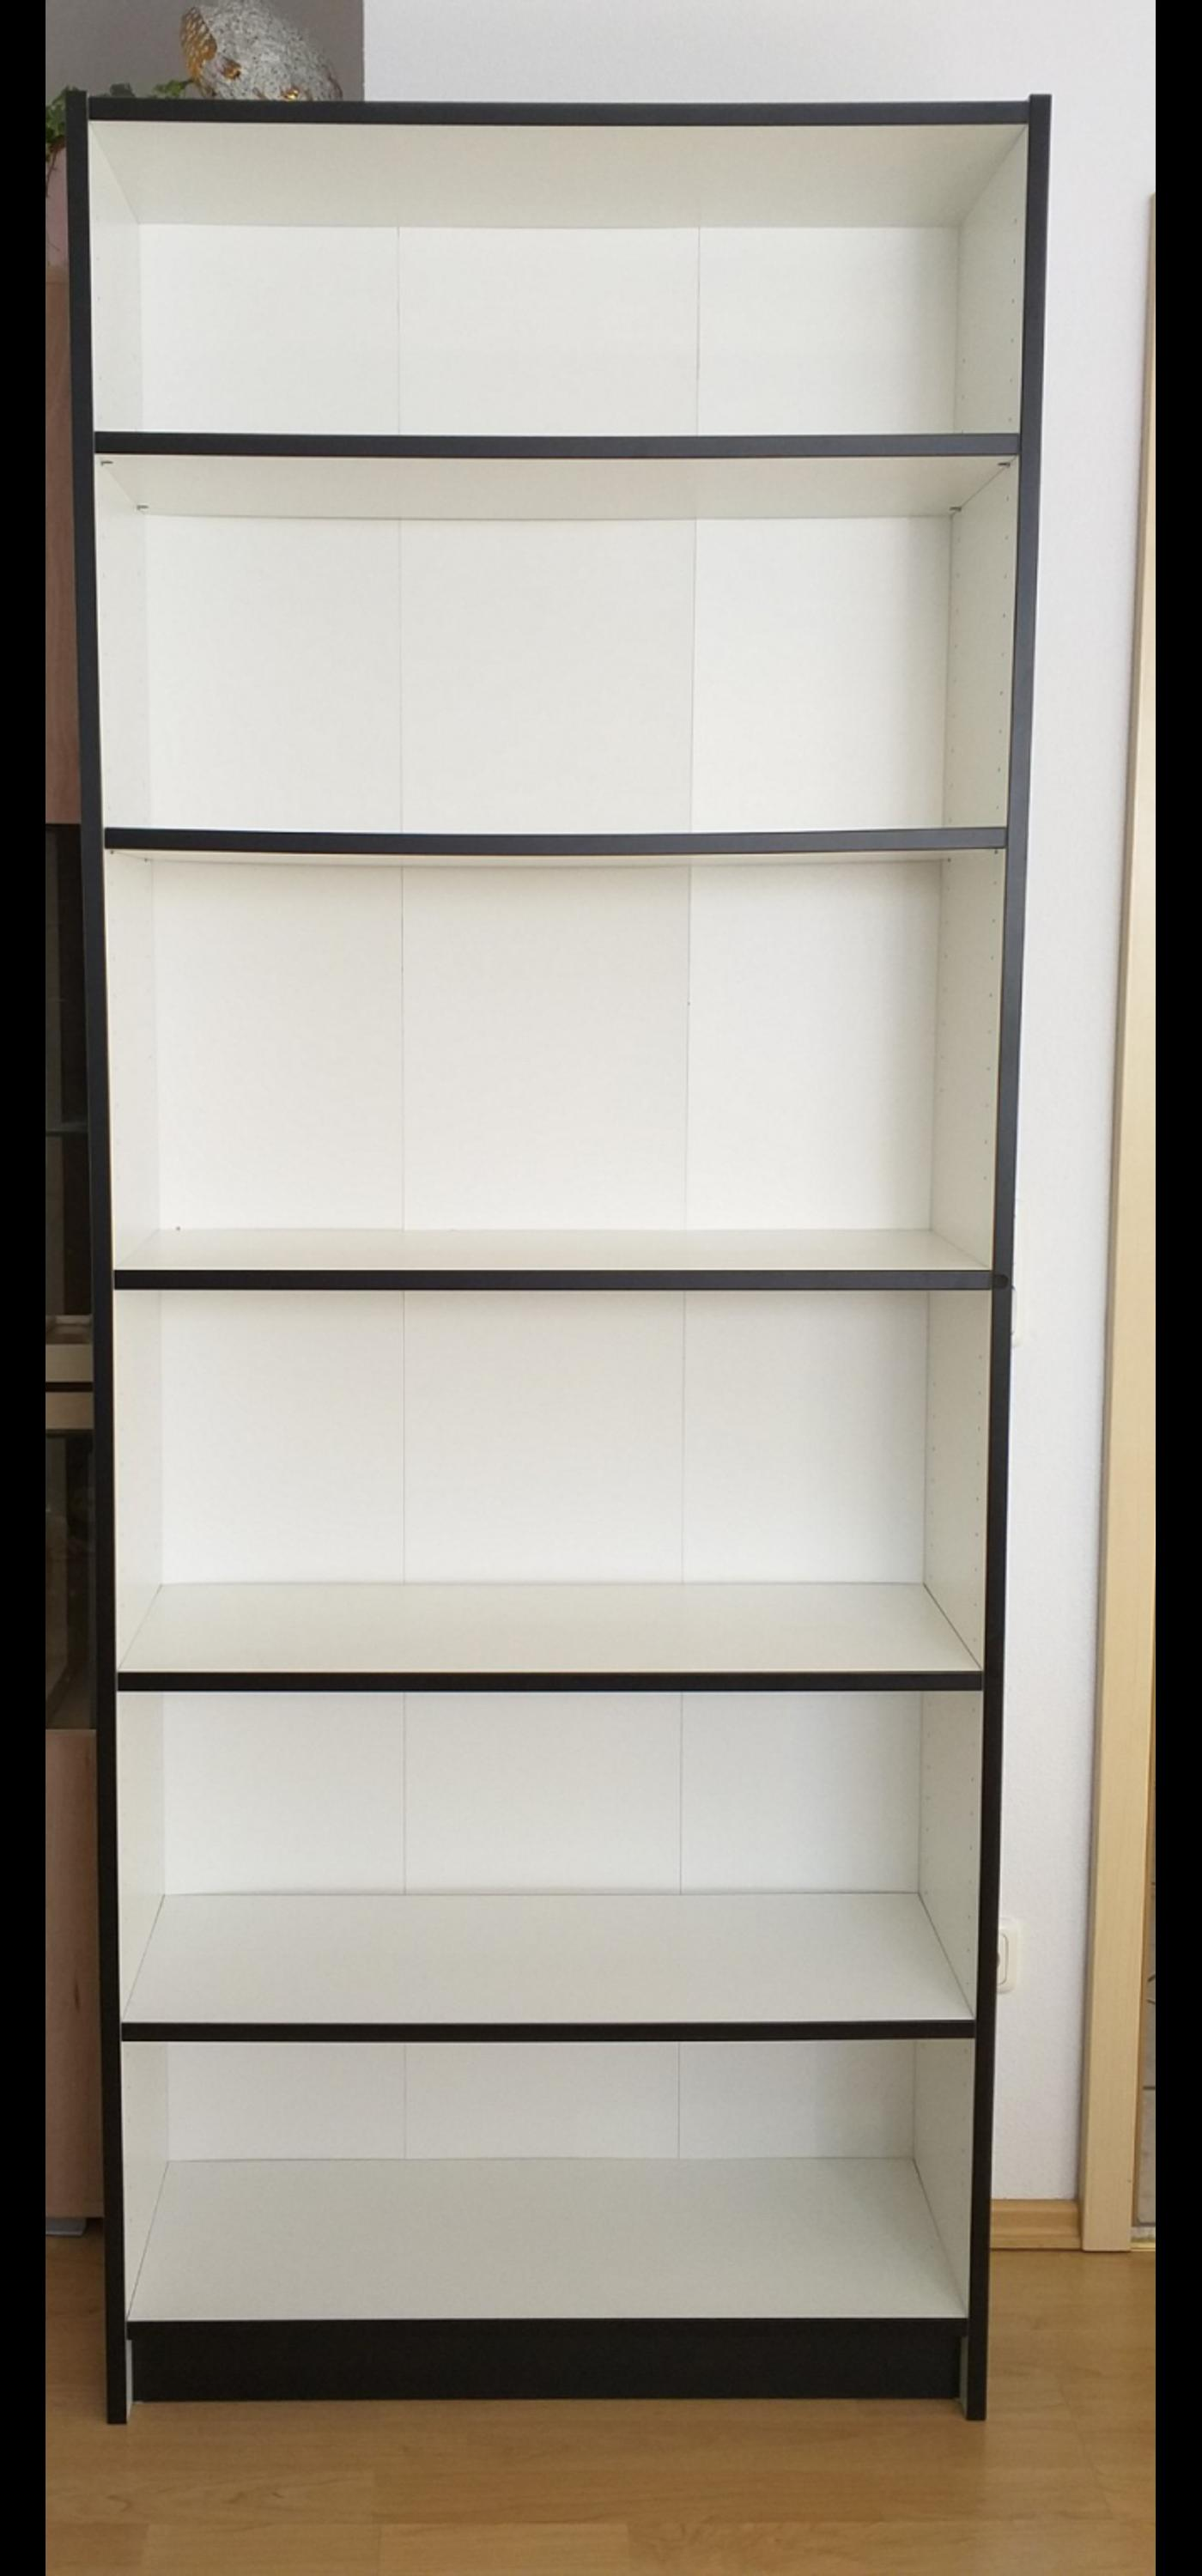 Billy Bucherregal Schwarz Weiss Ikea In 85716 Unterschleissheim For Free For Sale Shpock